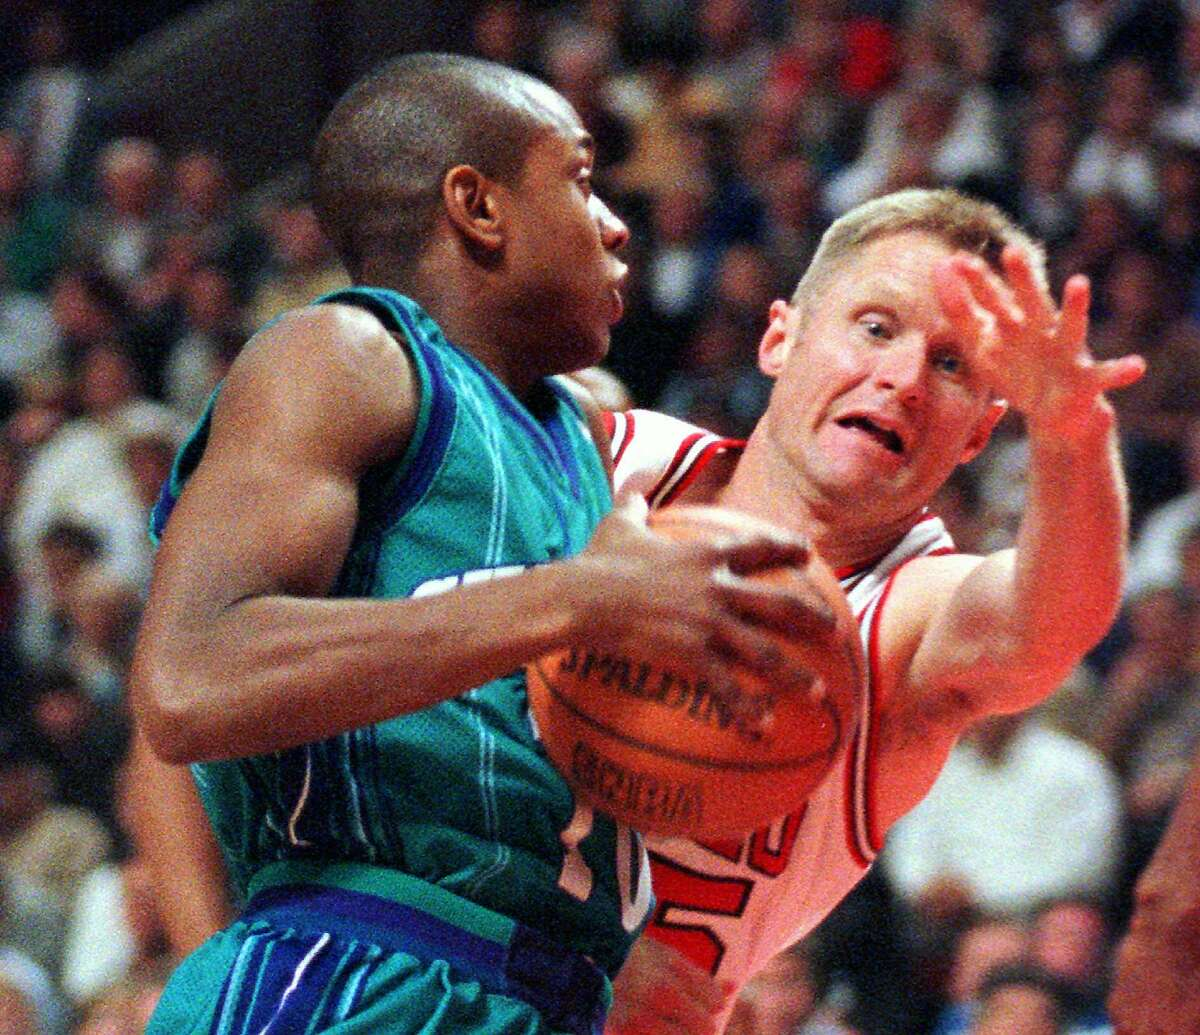 Chicago Bulls' Steve Kerr (25) tries to knock the ball away from Charlotte Hornets' B.J. Armstrong (10) during the first quarter of the Eastern Division Conference semifinal game Wednesday, May 6, 1998, in Chicago. (AP Photo/Beth A. Keiser) HOUCHRON CAPTION (05/07/1998): Charlotte's B.J. Armstrong, making a move against Steve Kerr, was a driving force as the Hornets surprised the Bulls 78-76 Wednesday night to even their series. Armstrong burned his former team for eight points in the fourth quarter as Charlotte overcame an eight-point deficit.